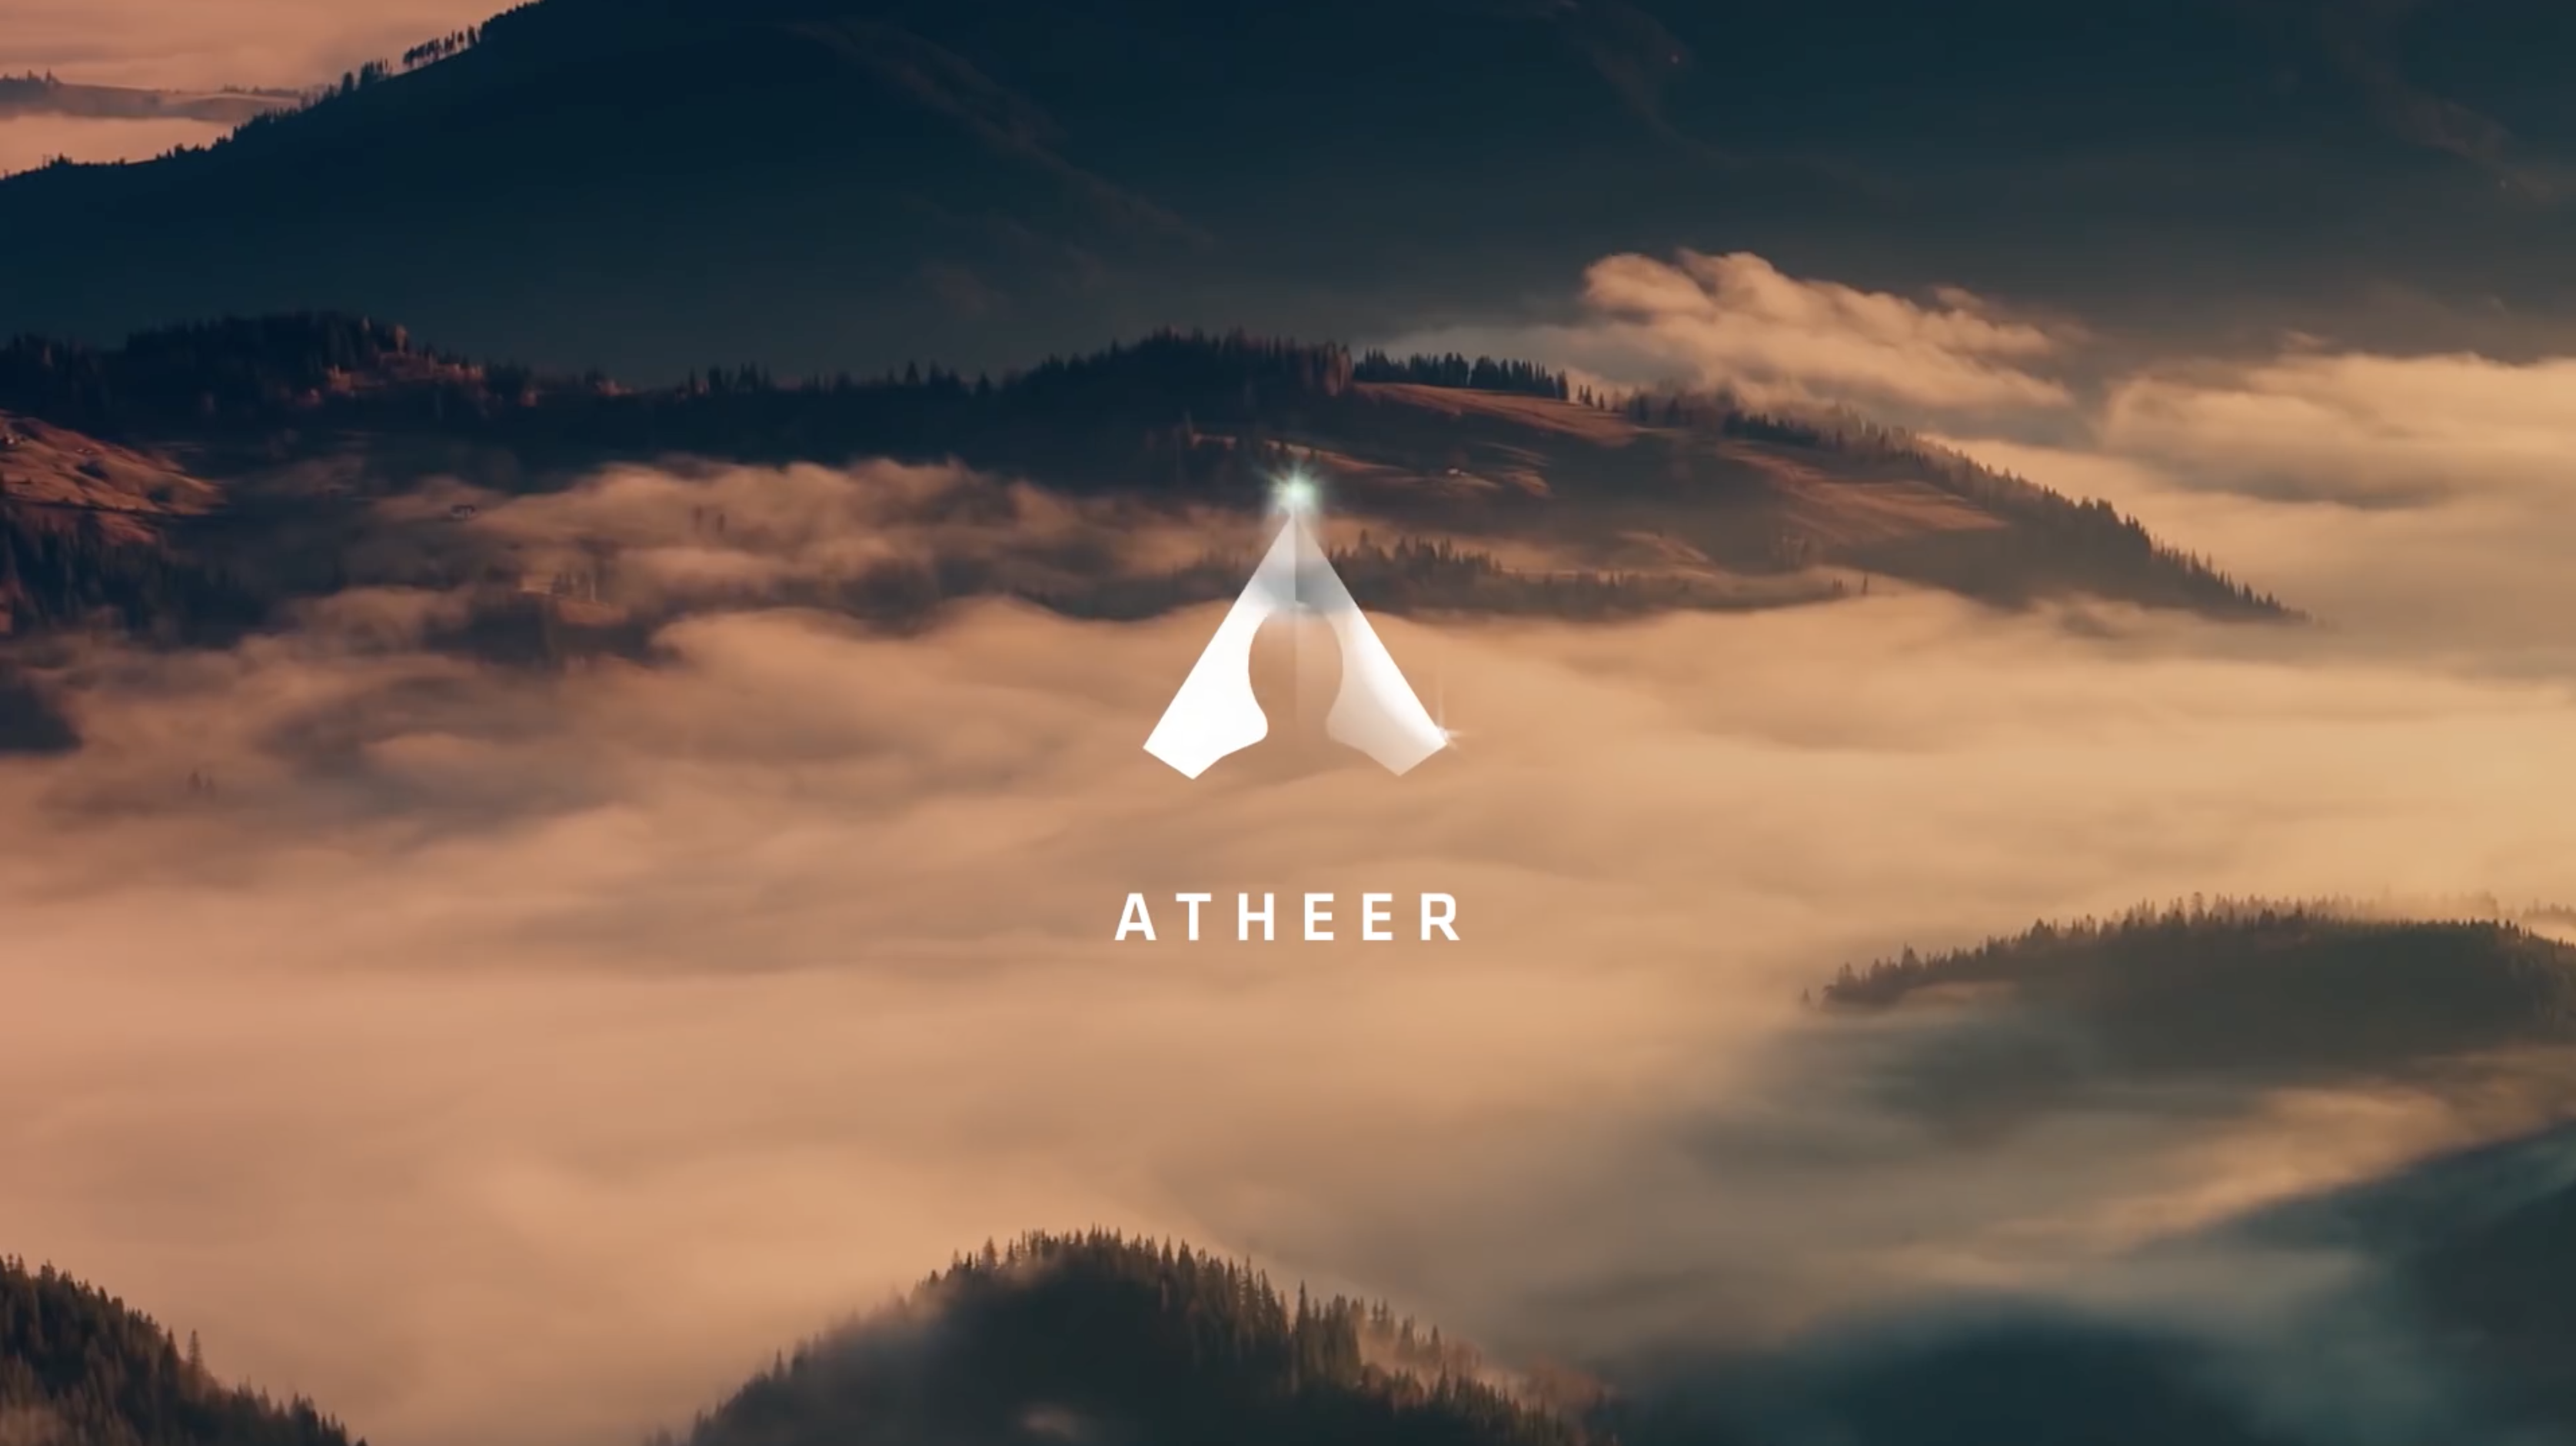 Atheer Air Augmented Reality UI & UX